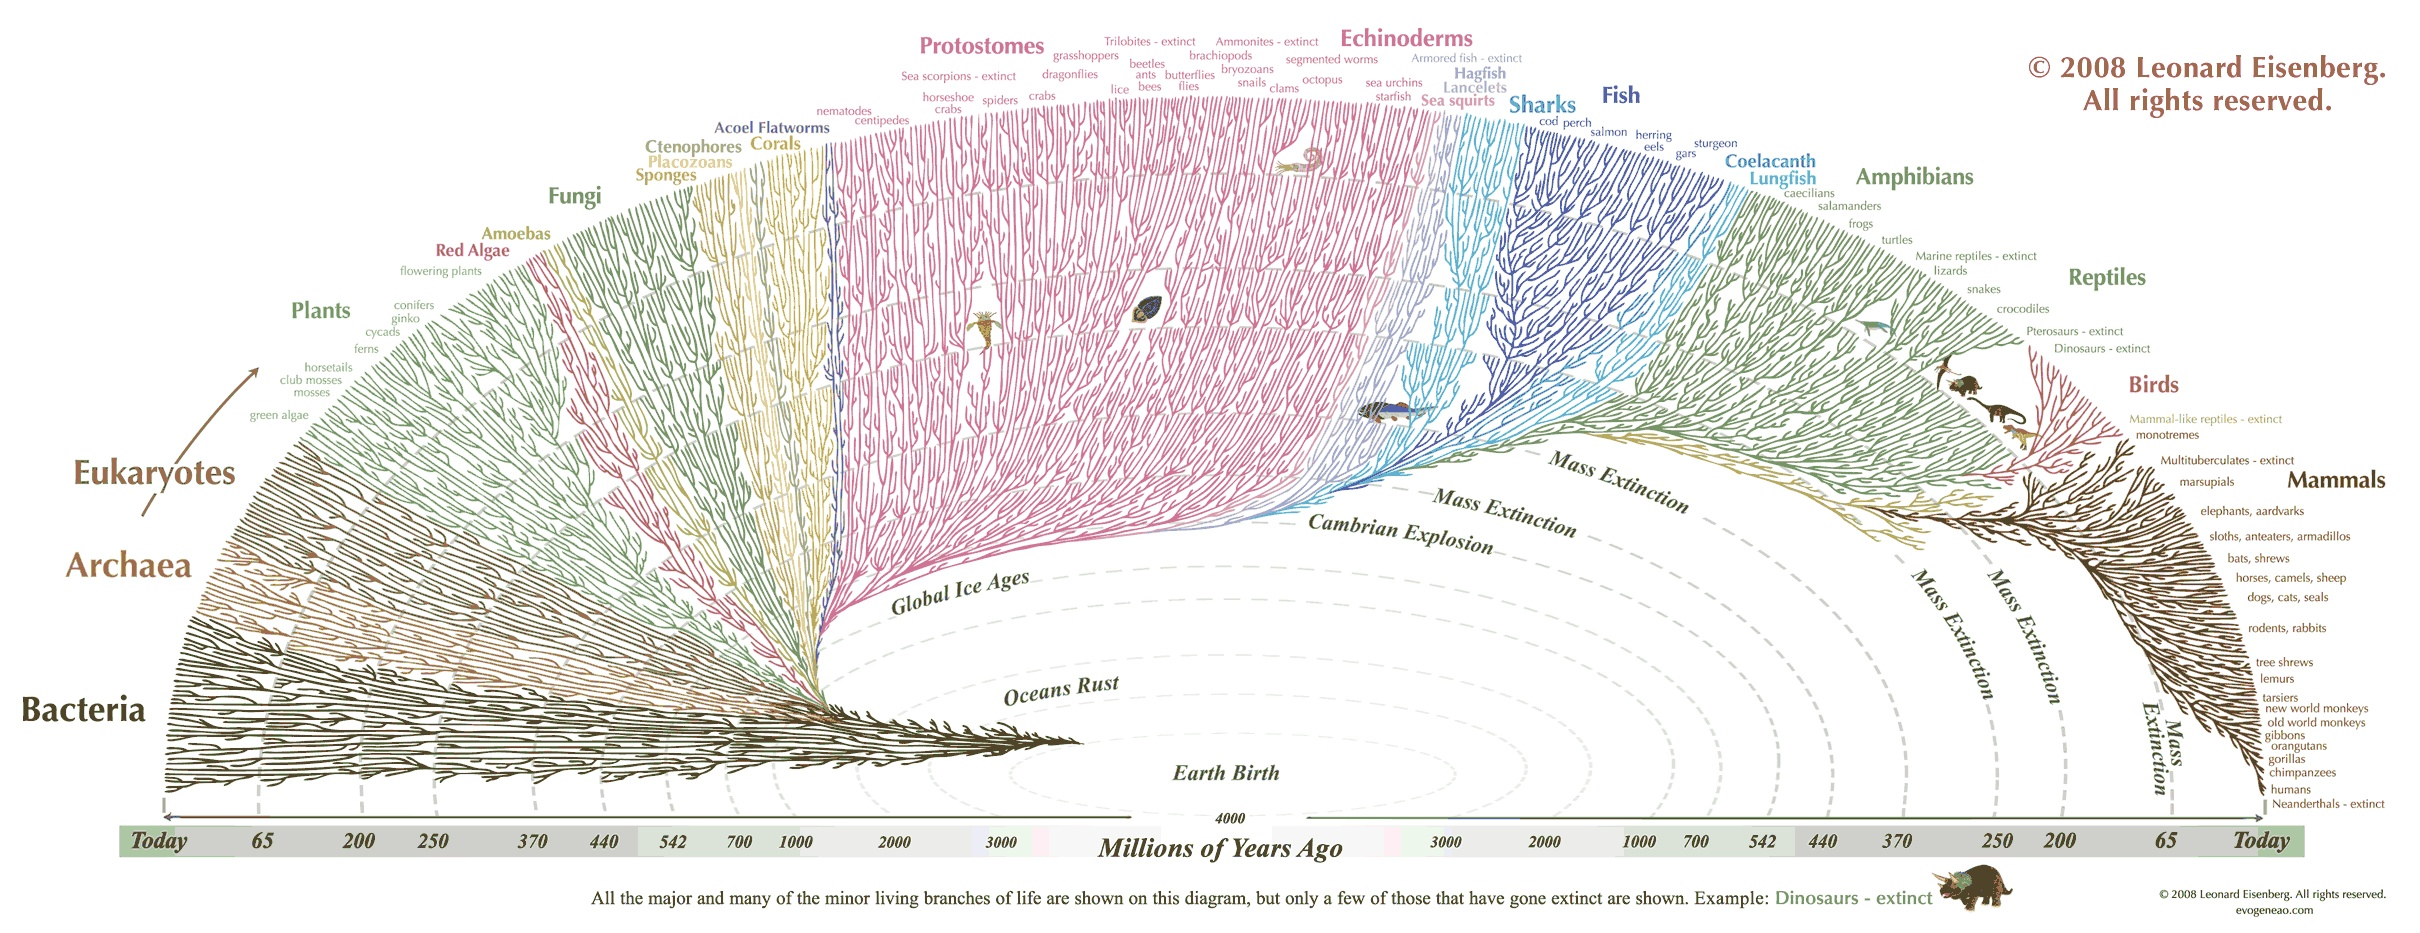 This infographic shows how diverse life is and how life developed over time. It shows the first single-cell organisms, evolving over millions of years, to mammals today. Extinction periods are […]